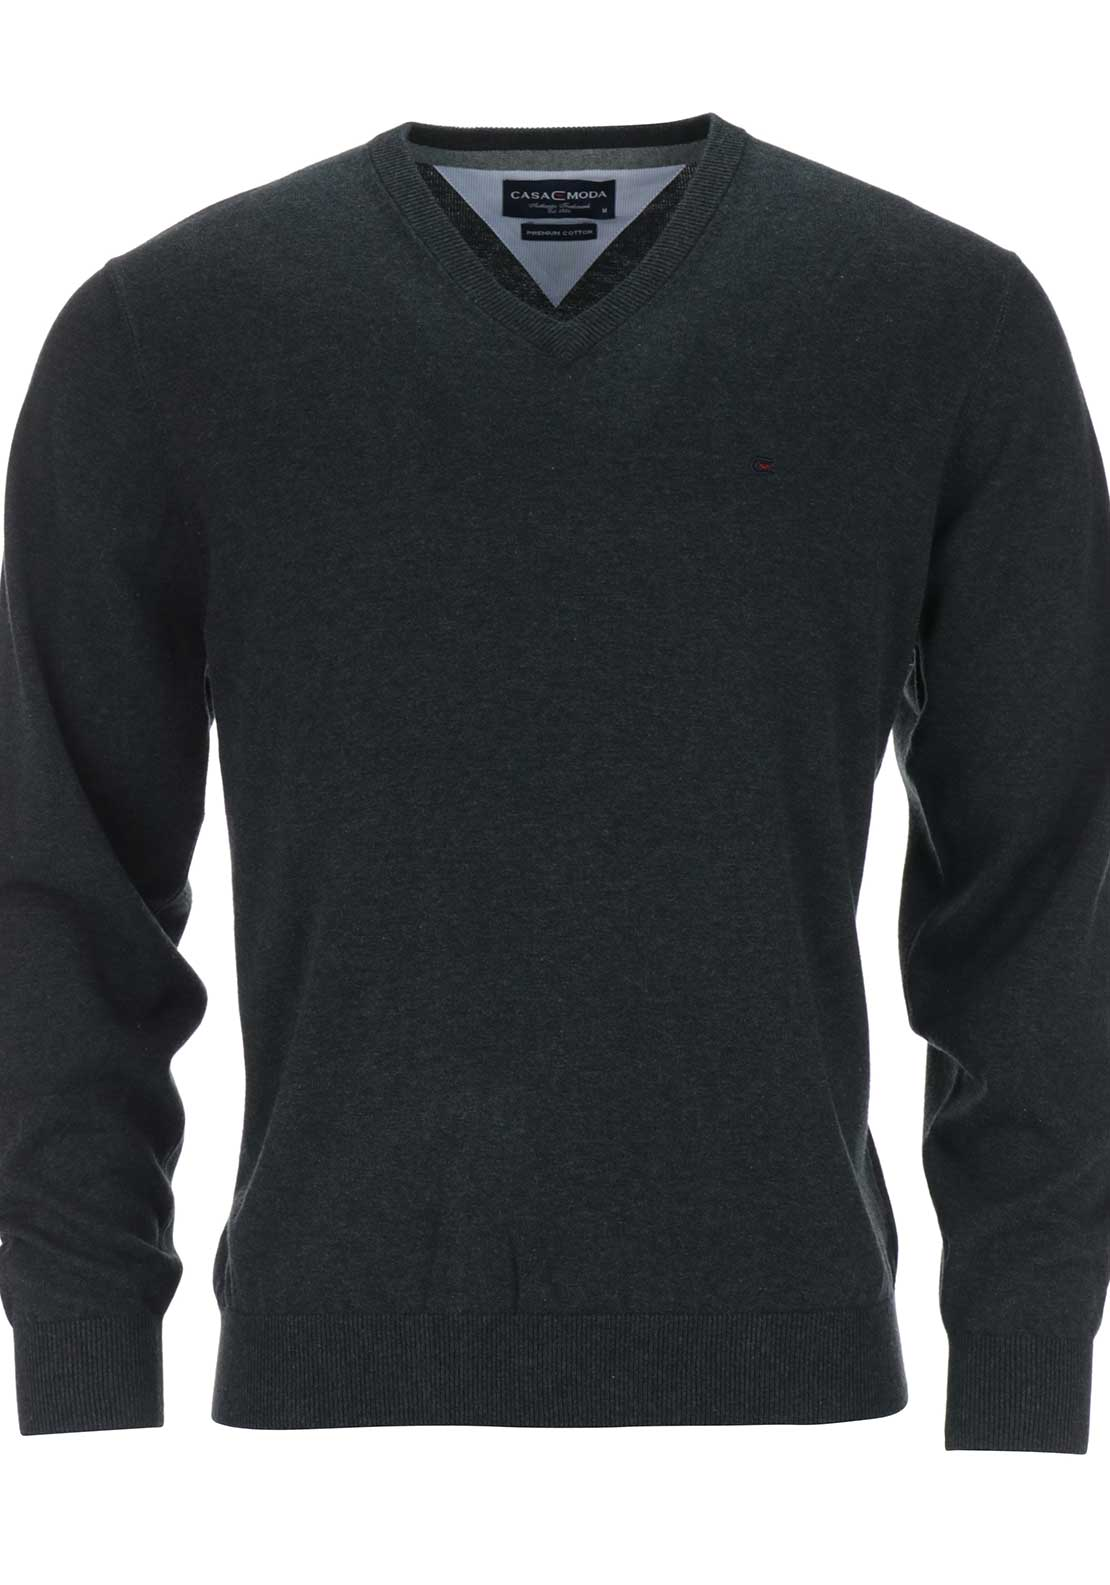 Casa Moda Mens V-Neck Premium Cotton Jumper, Charcoal